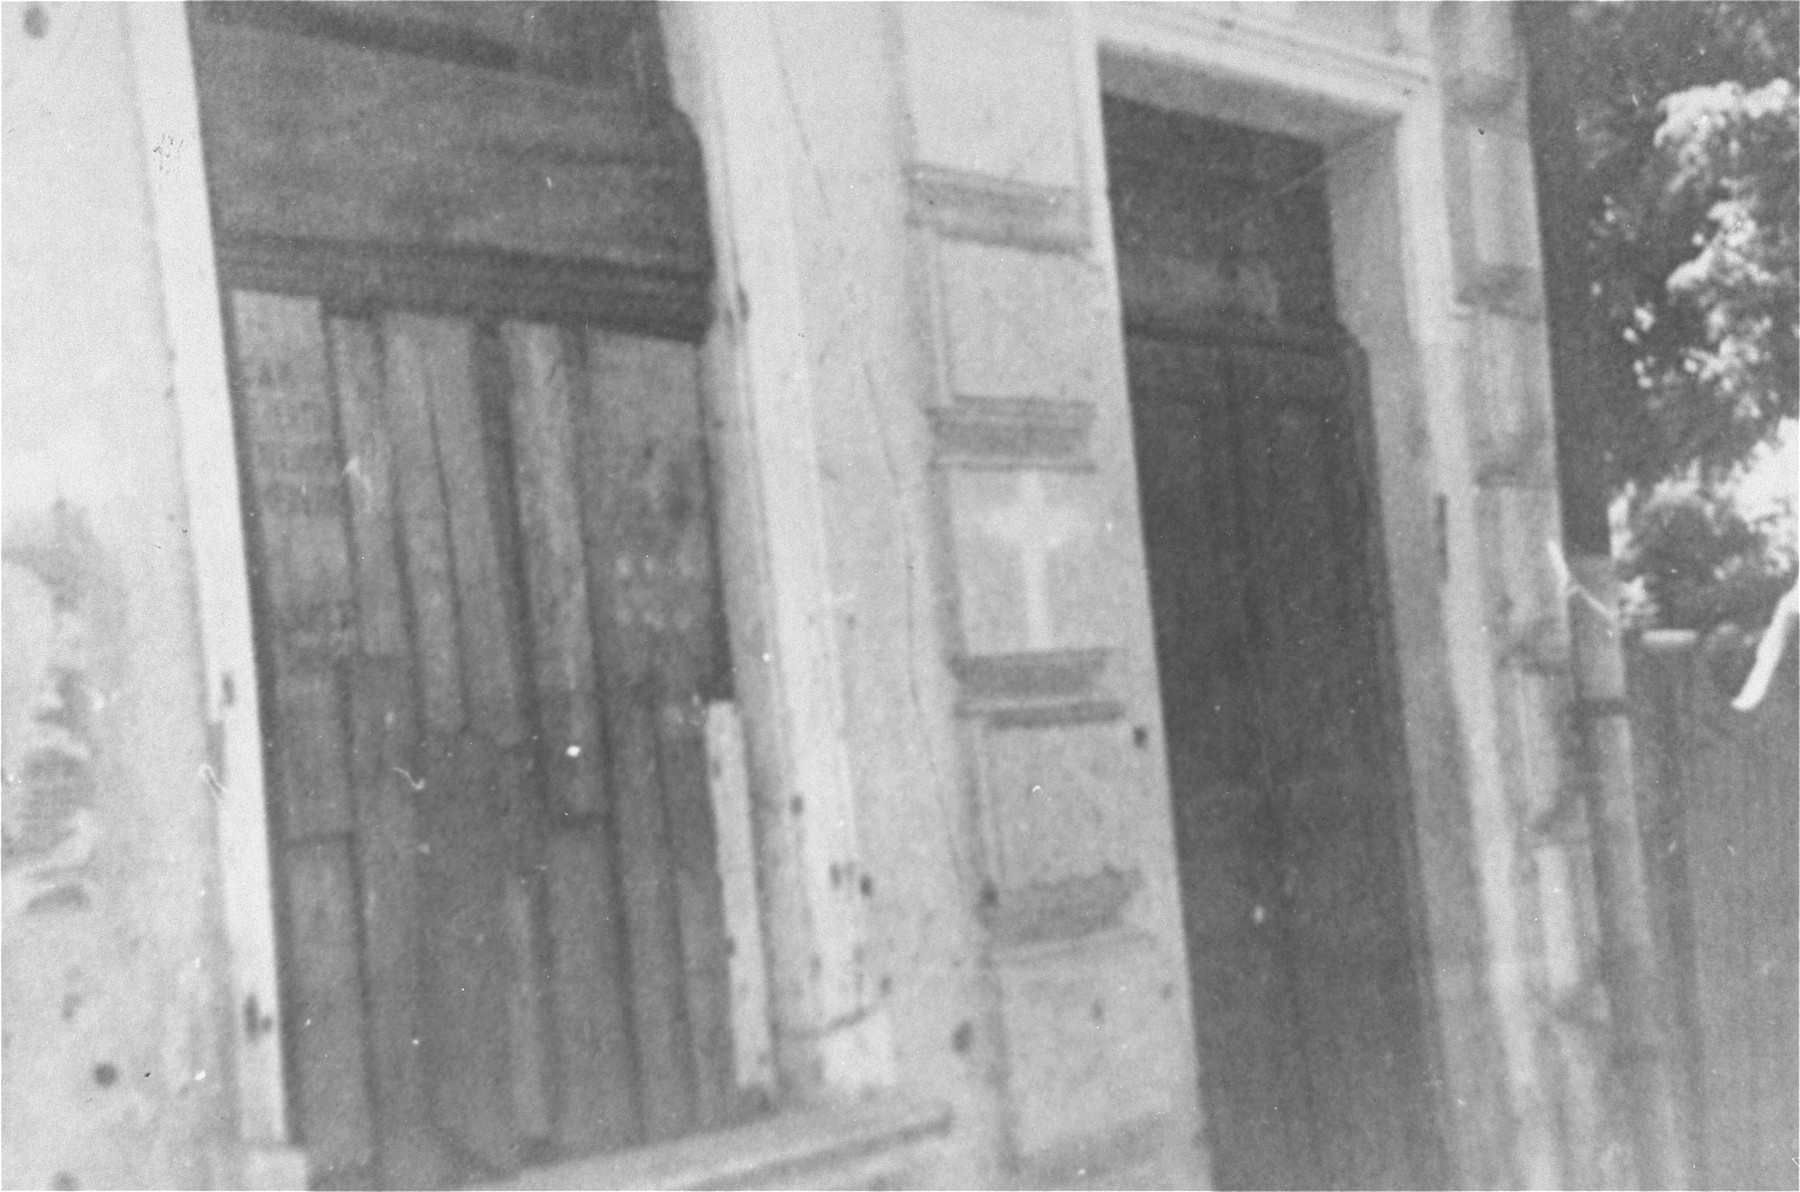 A house marked by a cross, indicating that no Jews lived there.    On June 25, Iasi policemen [invited] the Christian population to place crosses on their windows and doors. This cross served as a means to differentiate the Christian houses from the house of the intended victims.